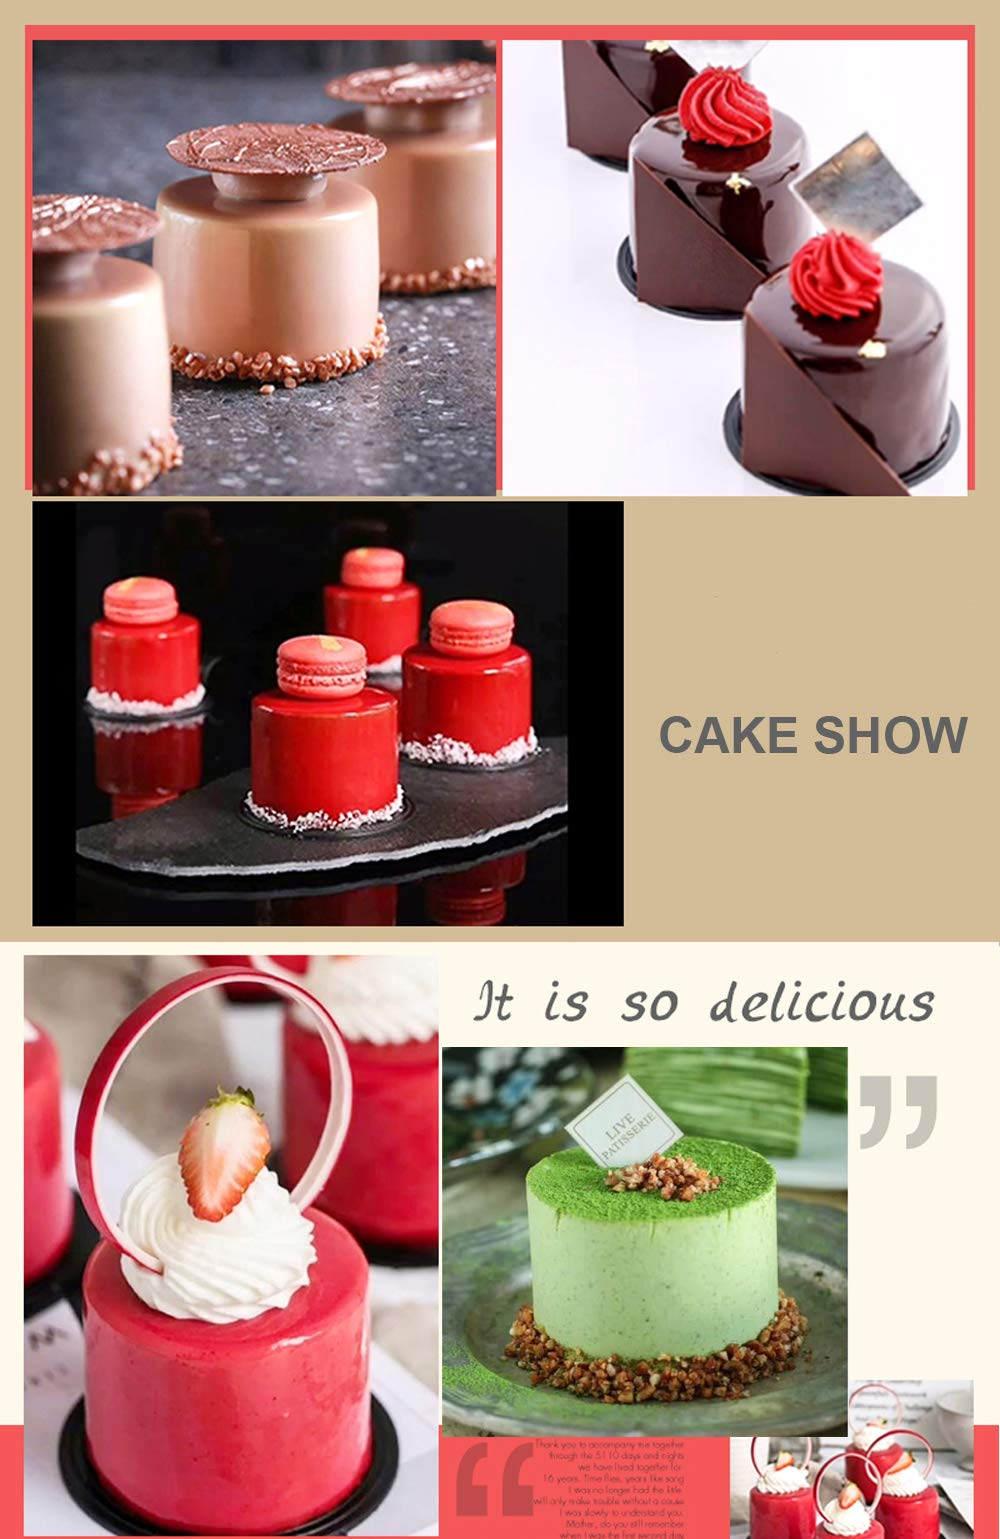 Silicone Mousse Cake Molds for Baking Brownie Chocolate Truffle Pudding Christmas Desserts,Nonstick, Easy Release, Food Grade Silicone,BPA Free,Set of 1 (3D Tall Cylinder) by JOHO (Image #7)